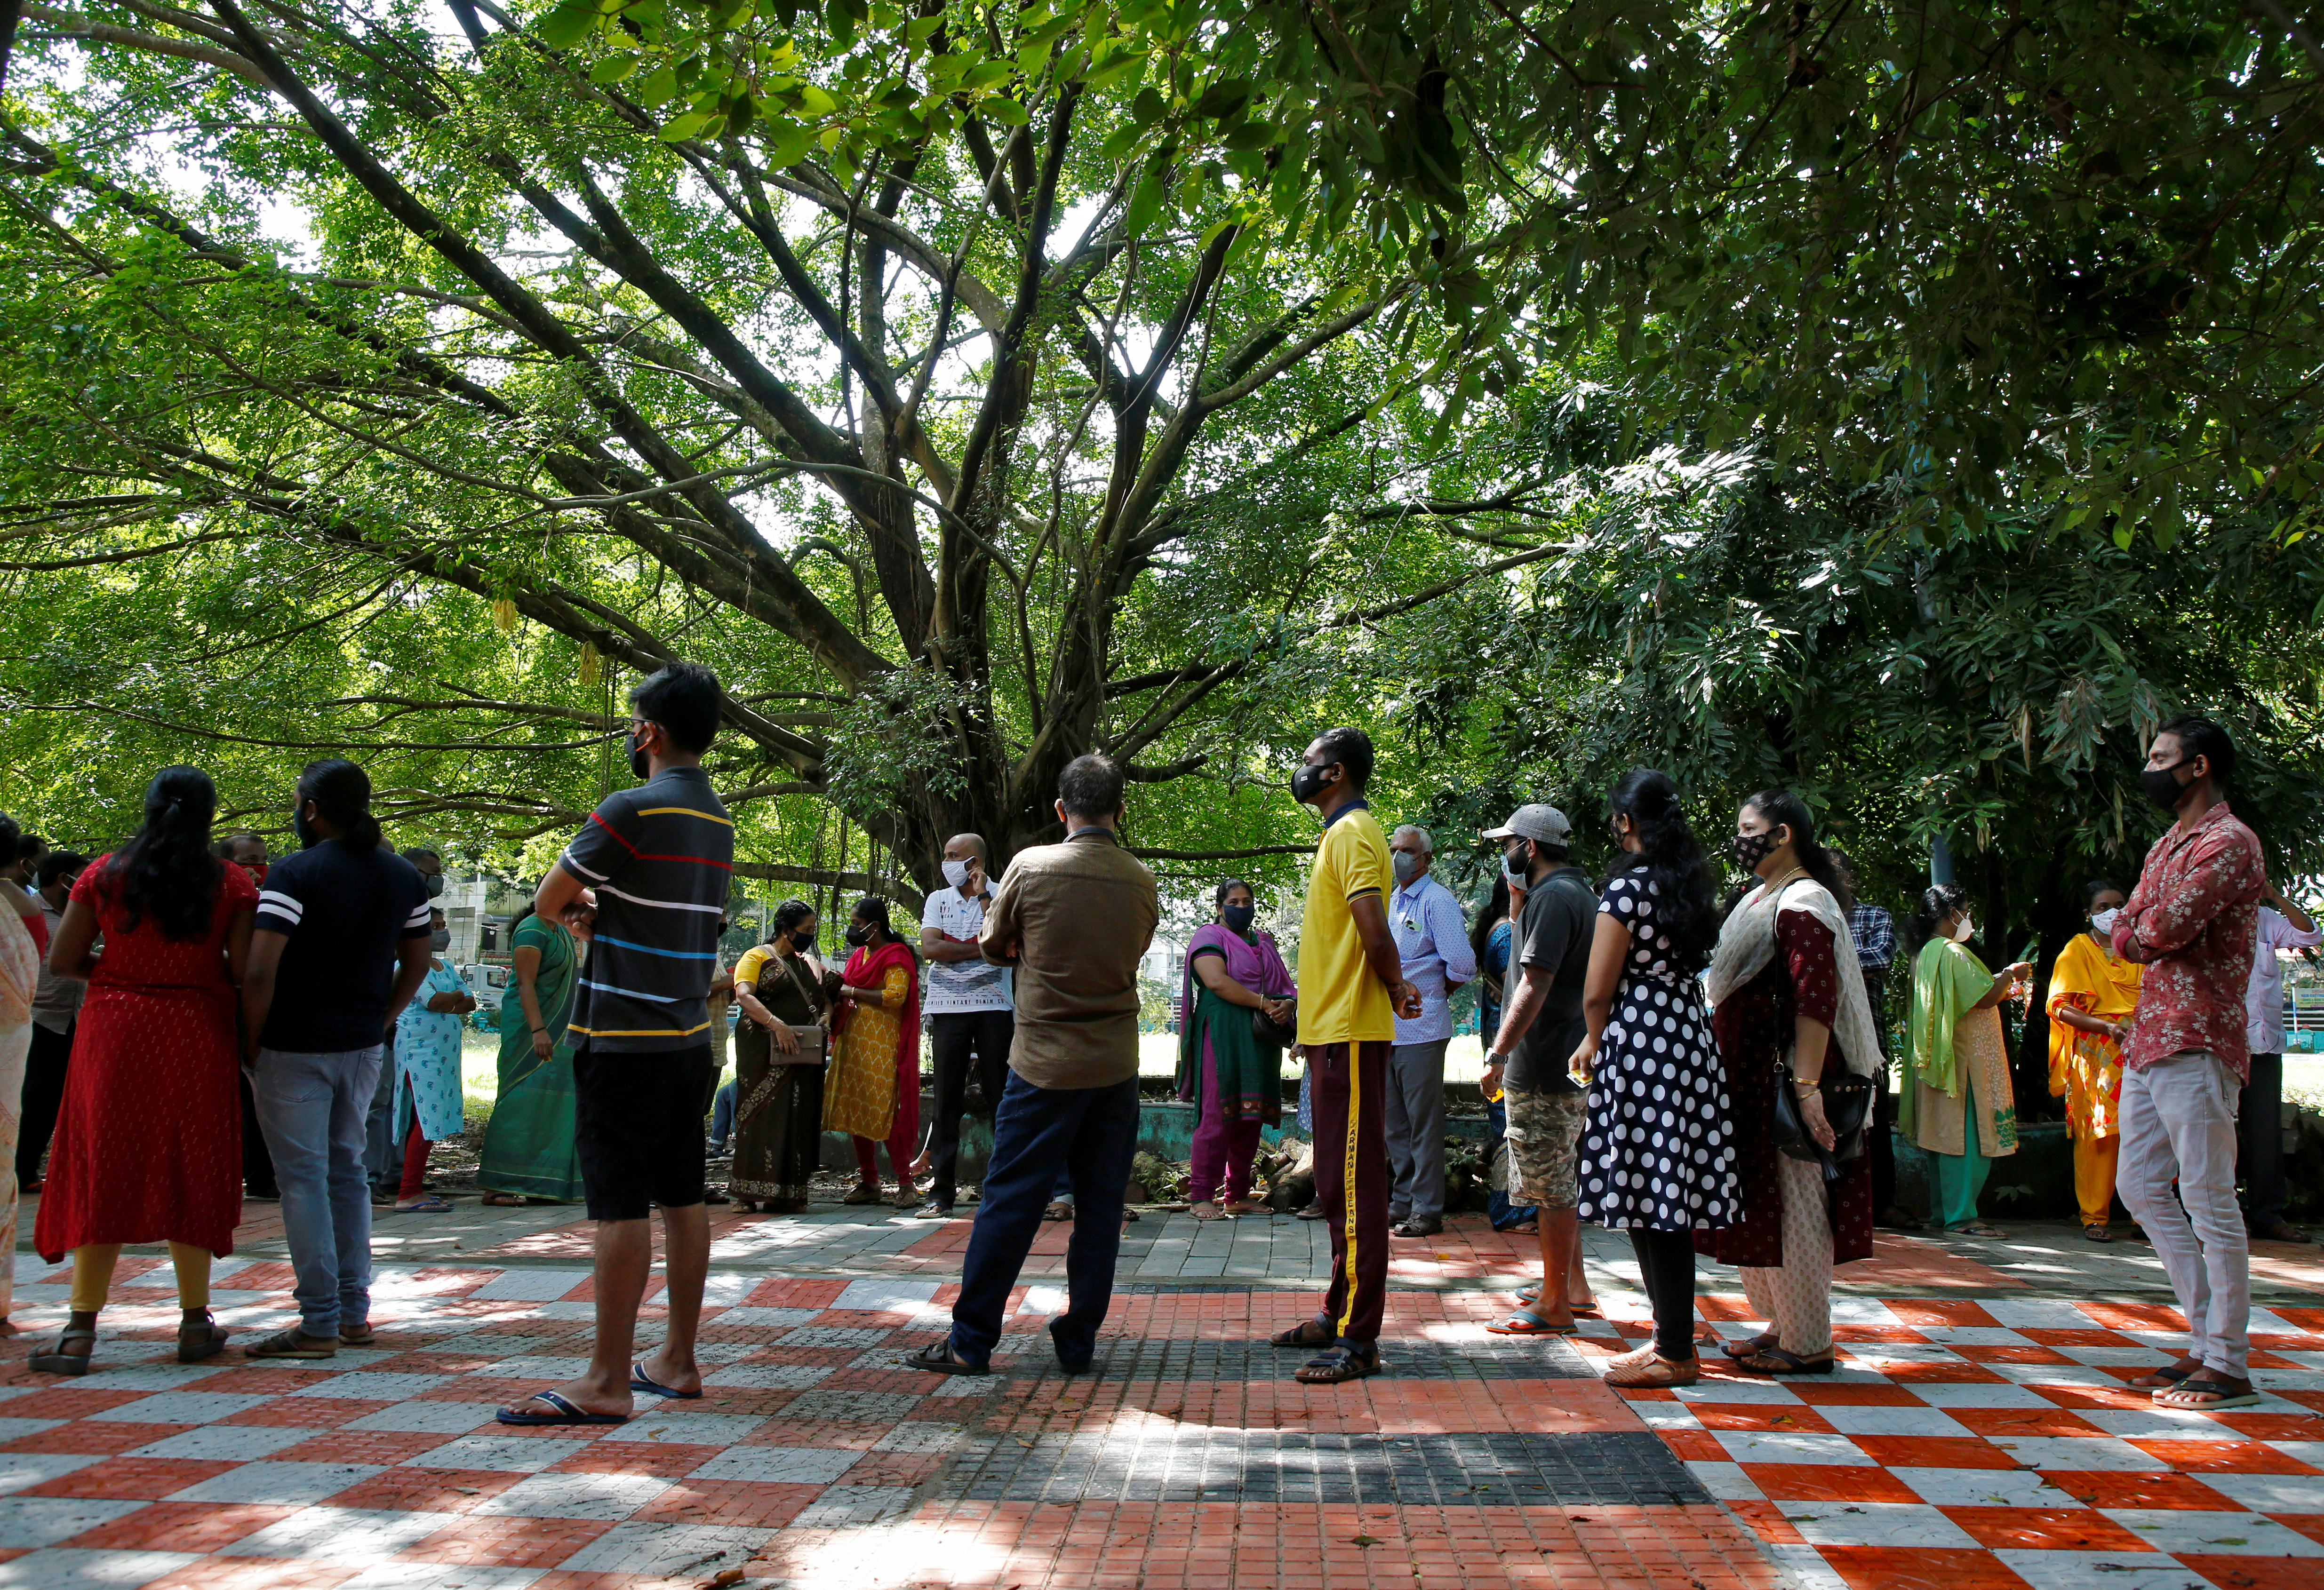 People wait in queues to receive a dose of COVISHIELD, a vaccine against coronavirus disease (COVID-19) manufactured by Serum Institute of India, outside a community centre in Kochi, India, September 7, 2021. REUTERS/Sivaram V